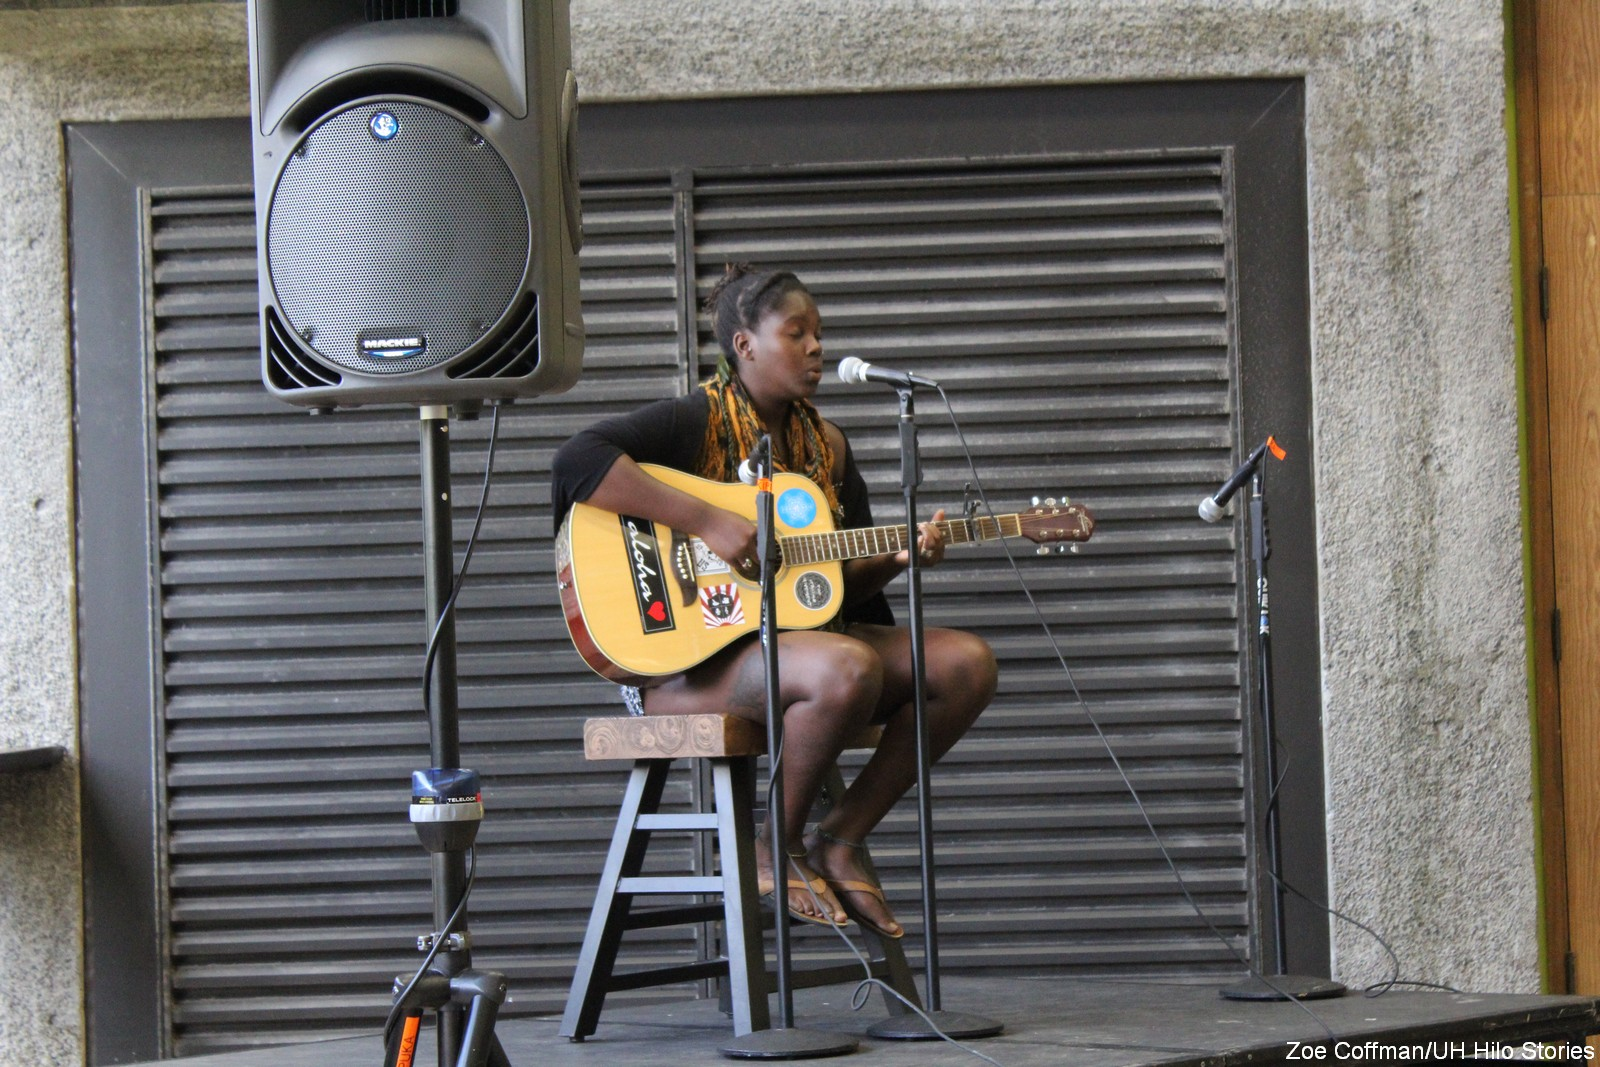 Black History Month at UH Hilo: Soul Food for Thought Café, from poetry to music to hula